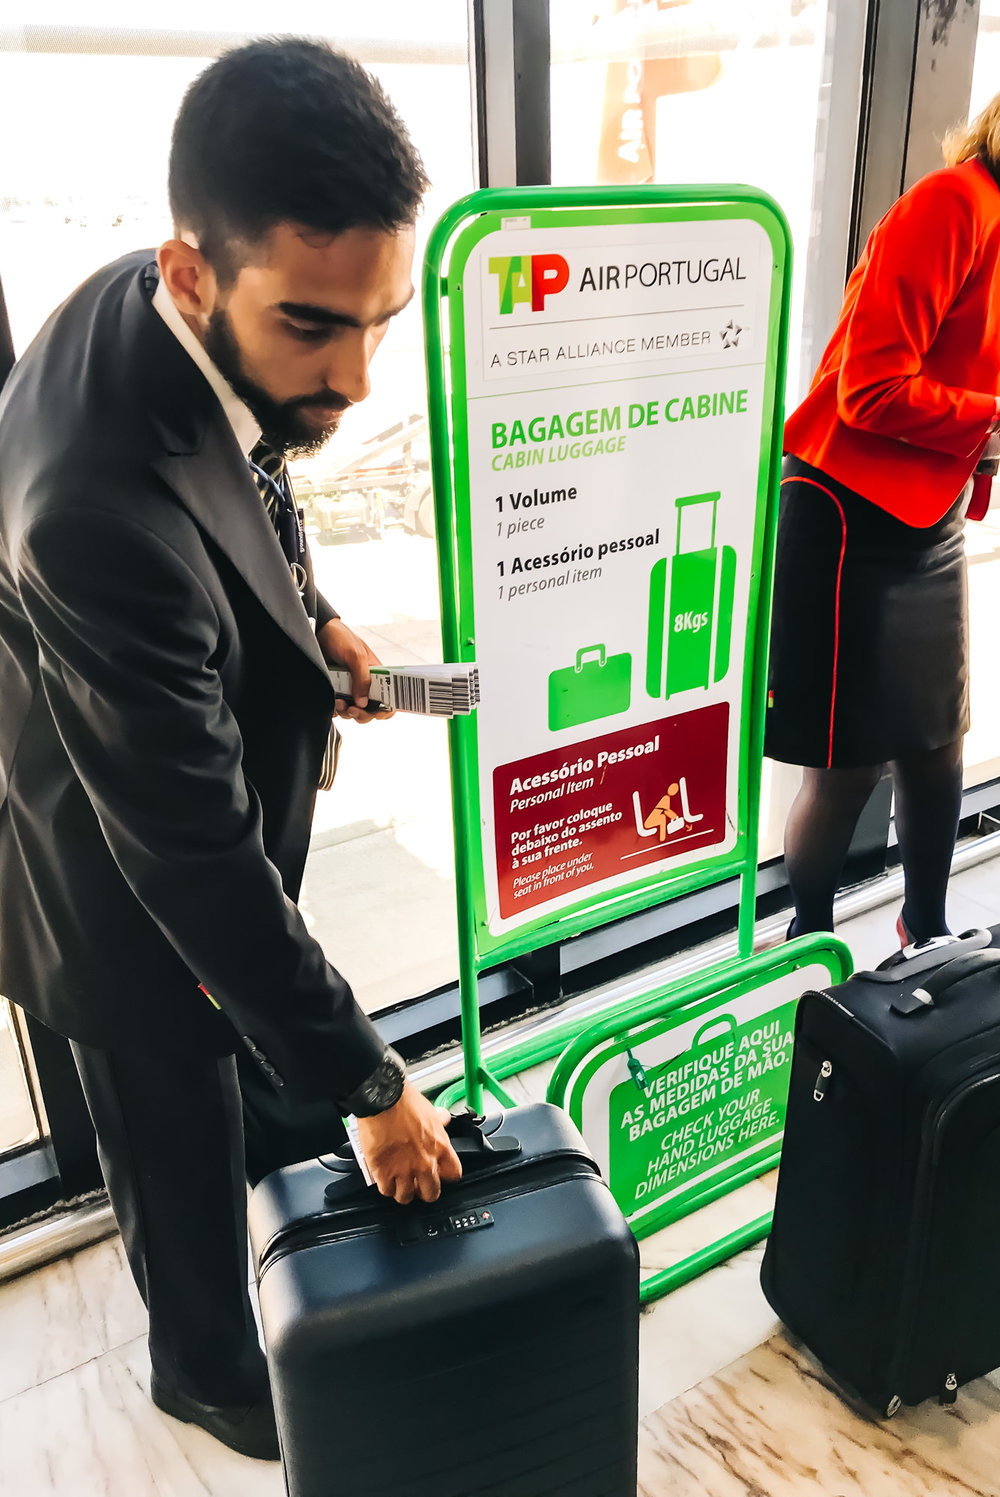 Checkpoint to measure carry-on luggage